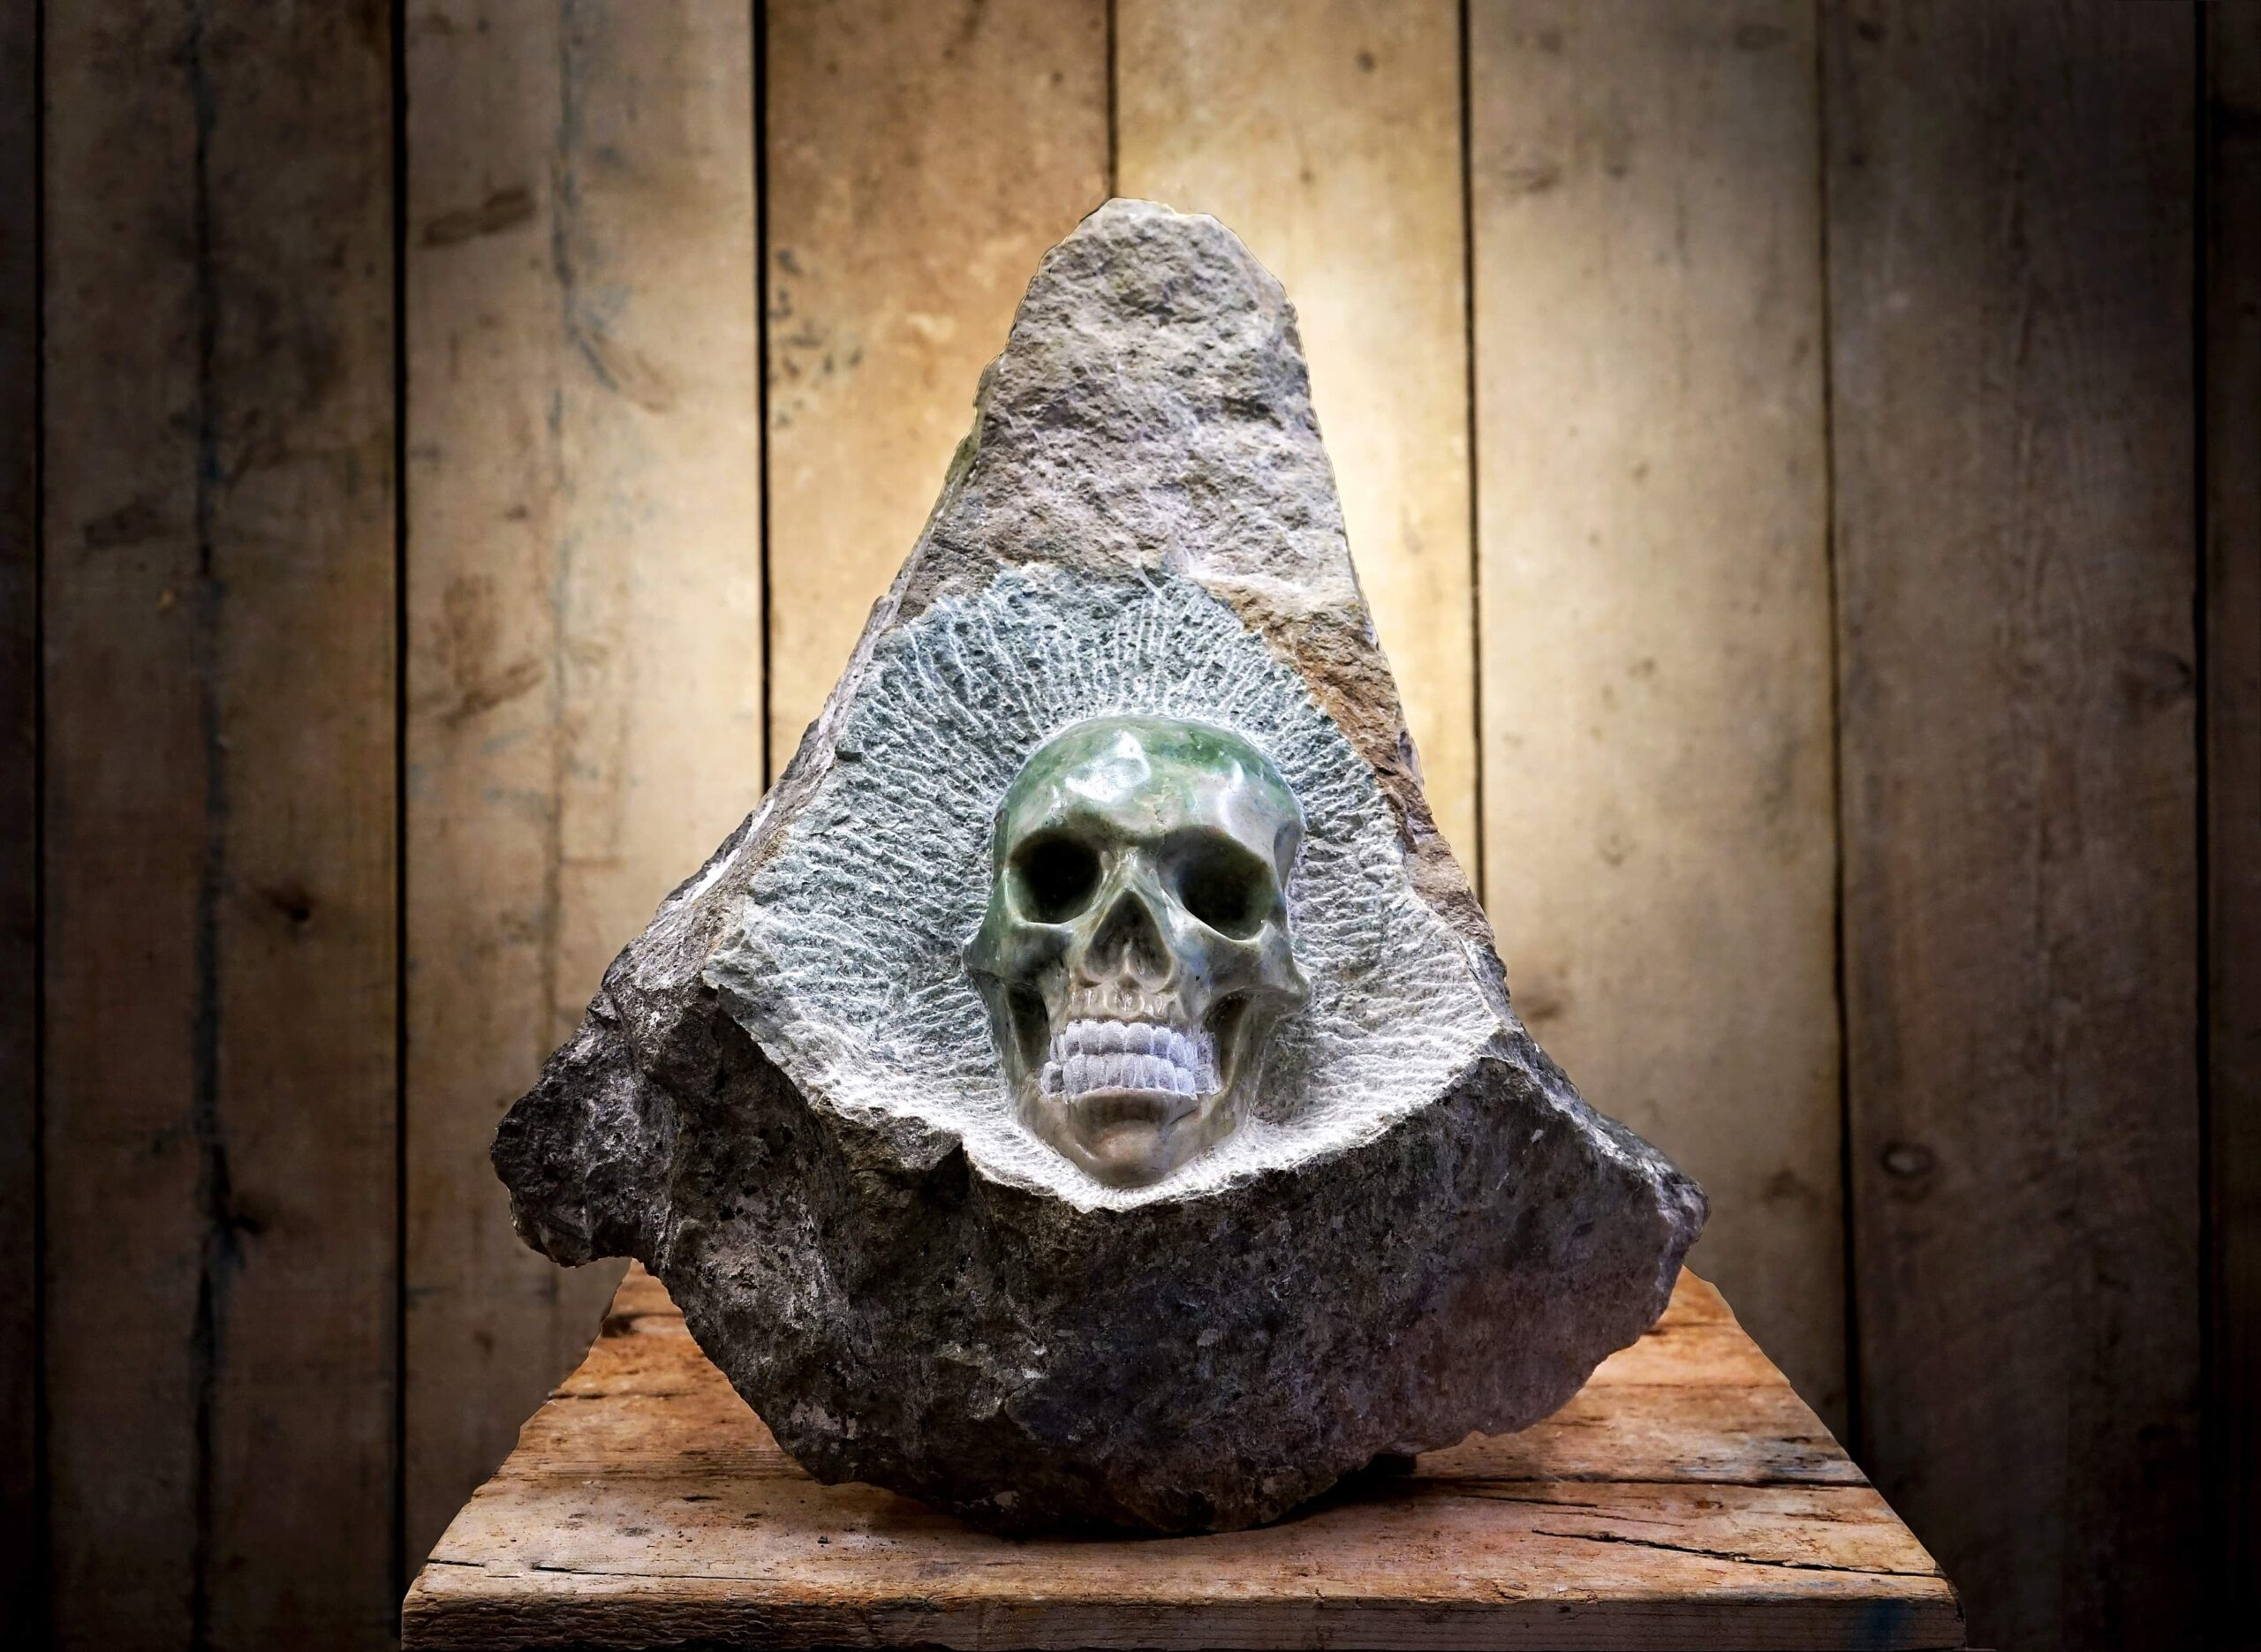 Marmora Marble sculpture with skull by Jordan Clements.